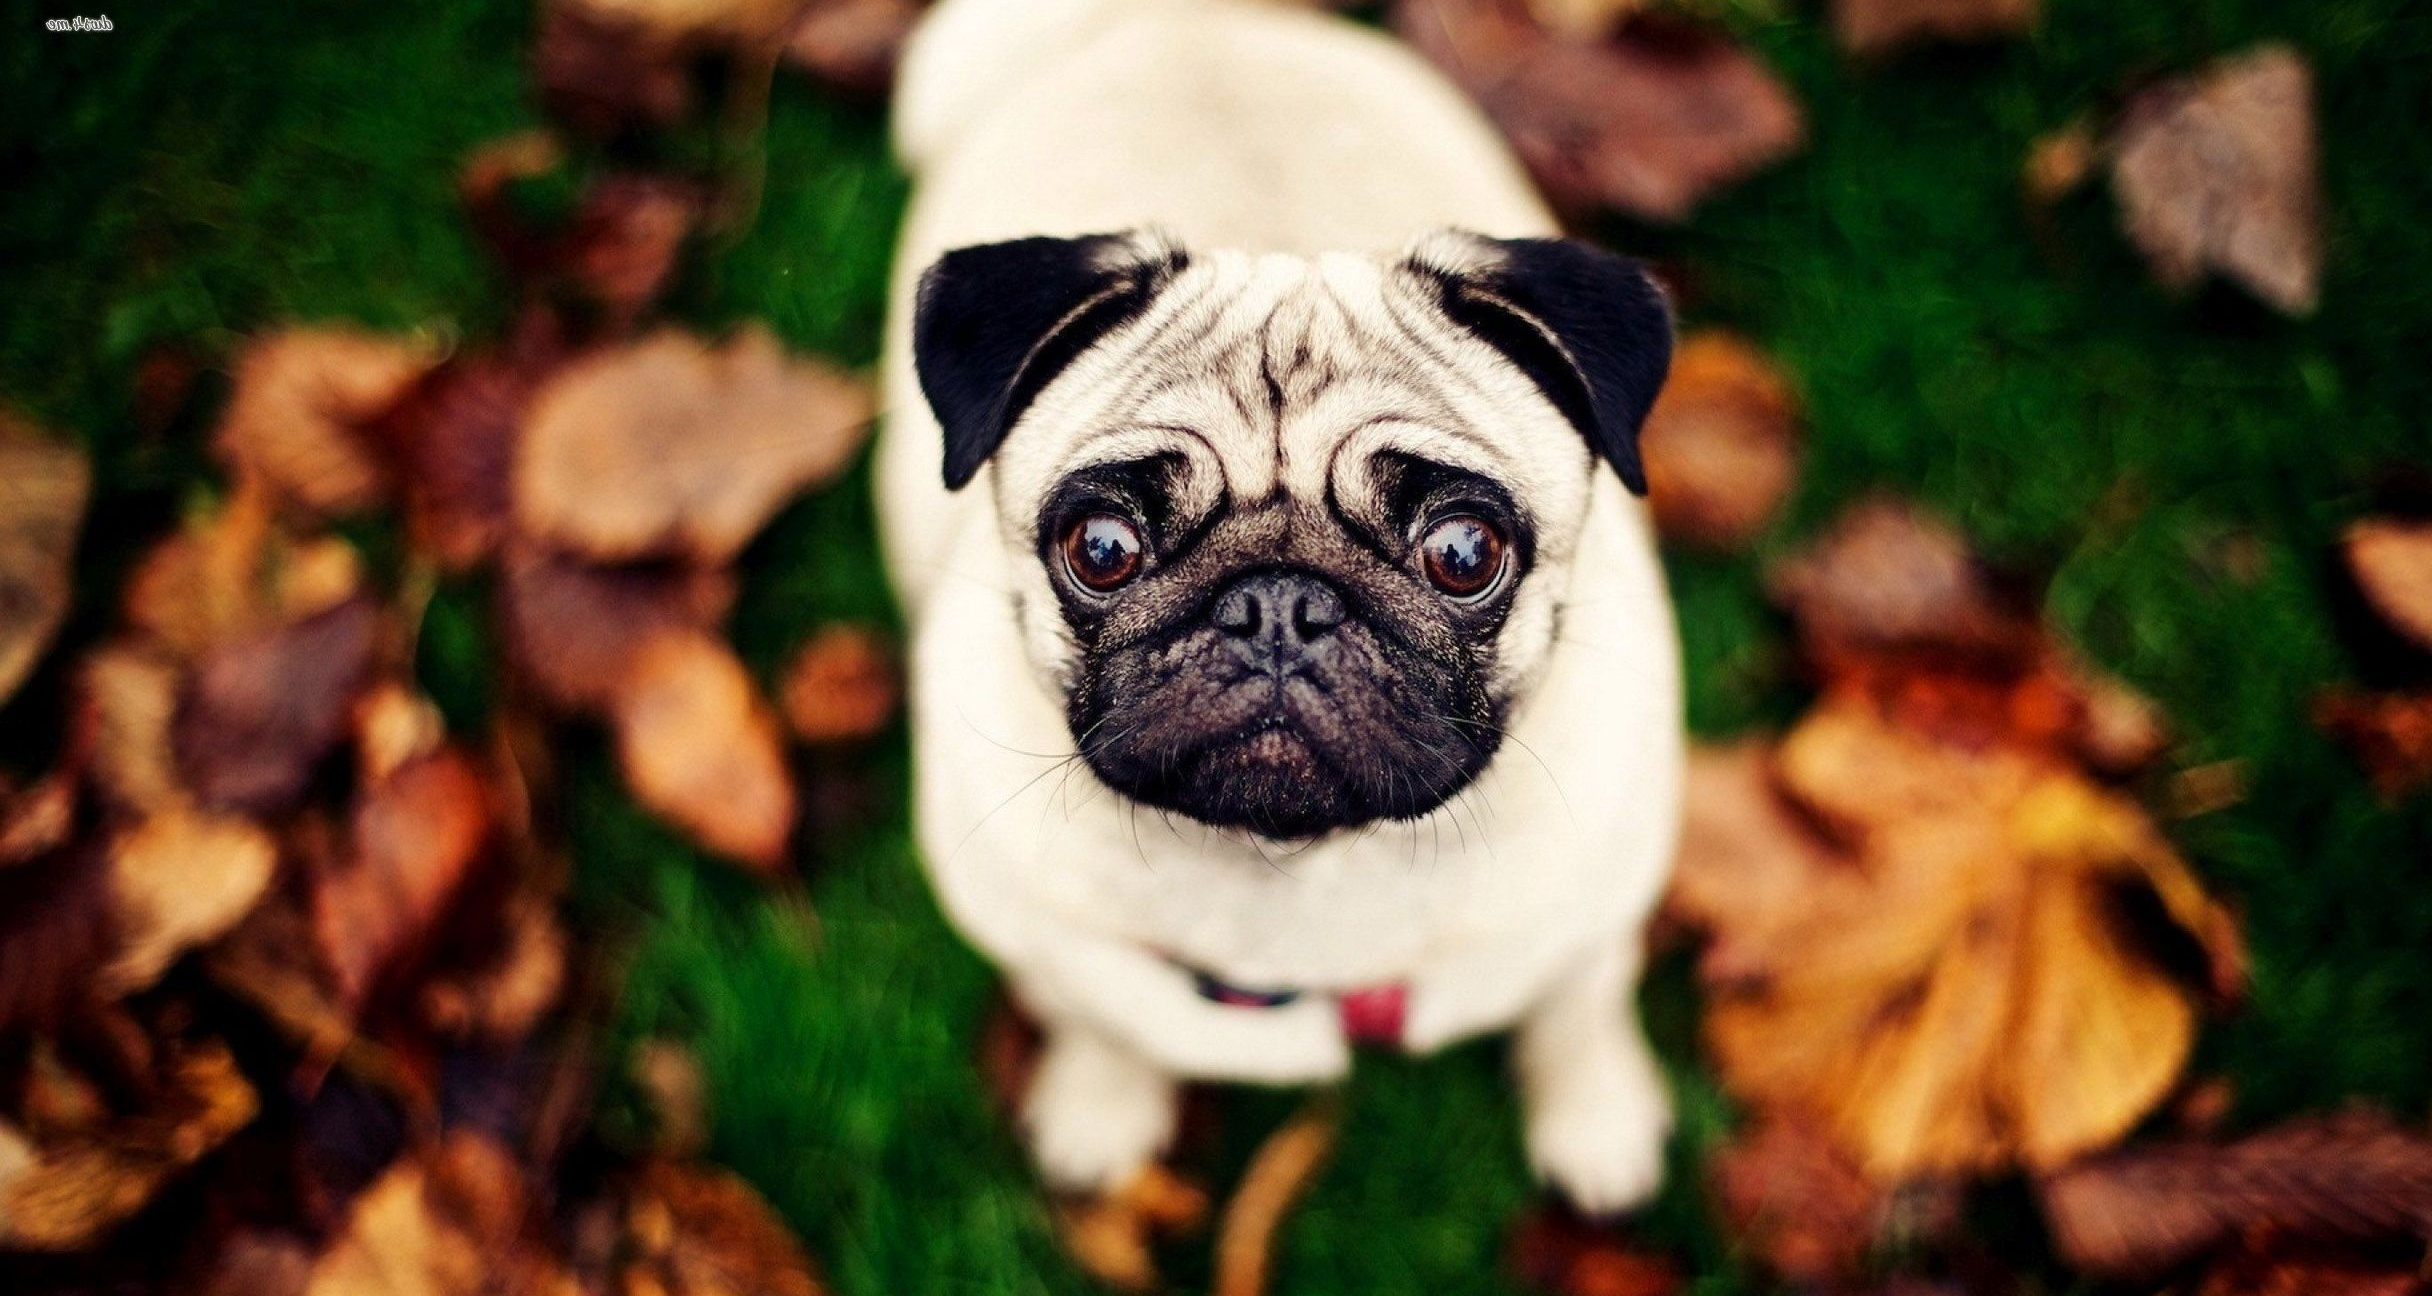 Pug wallpaper - Animal wallpapers - #27948